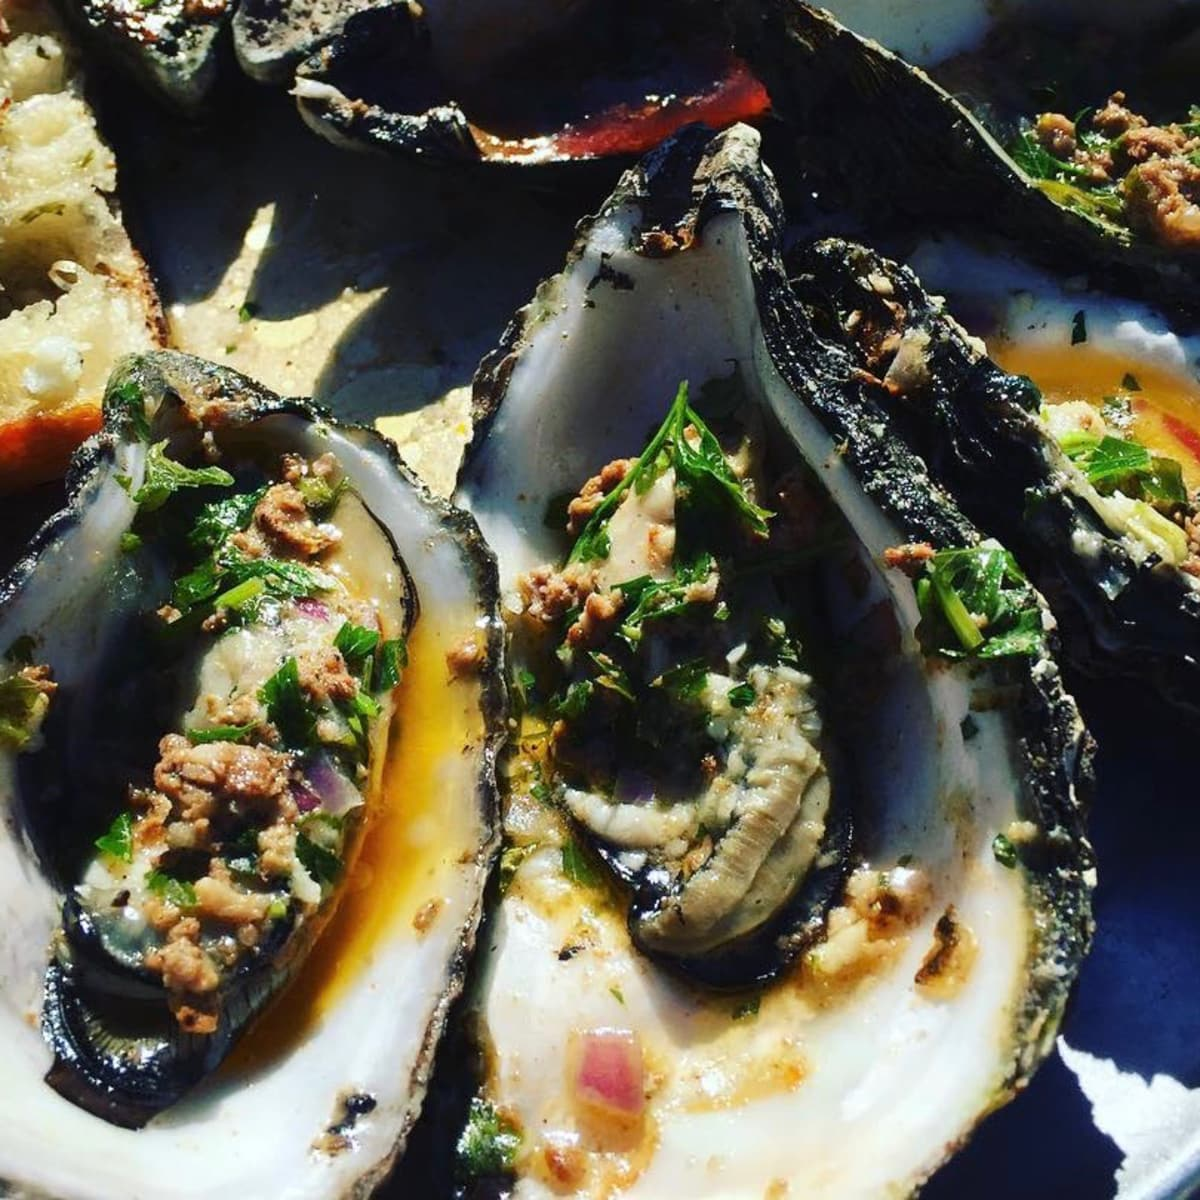 Nobie's roasted oysters